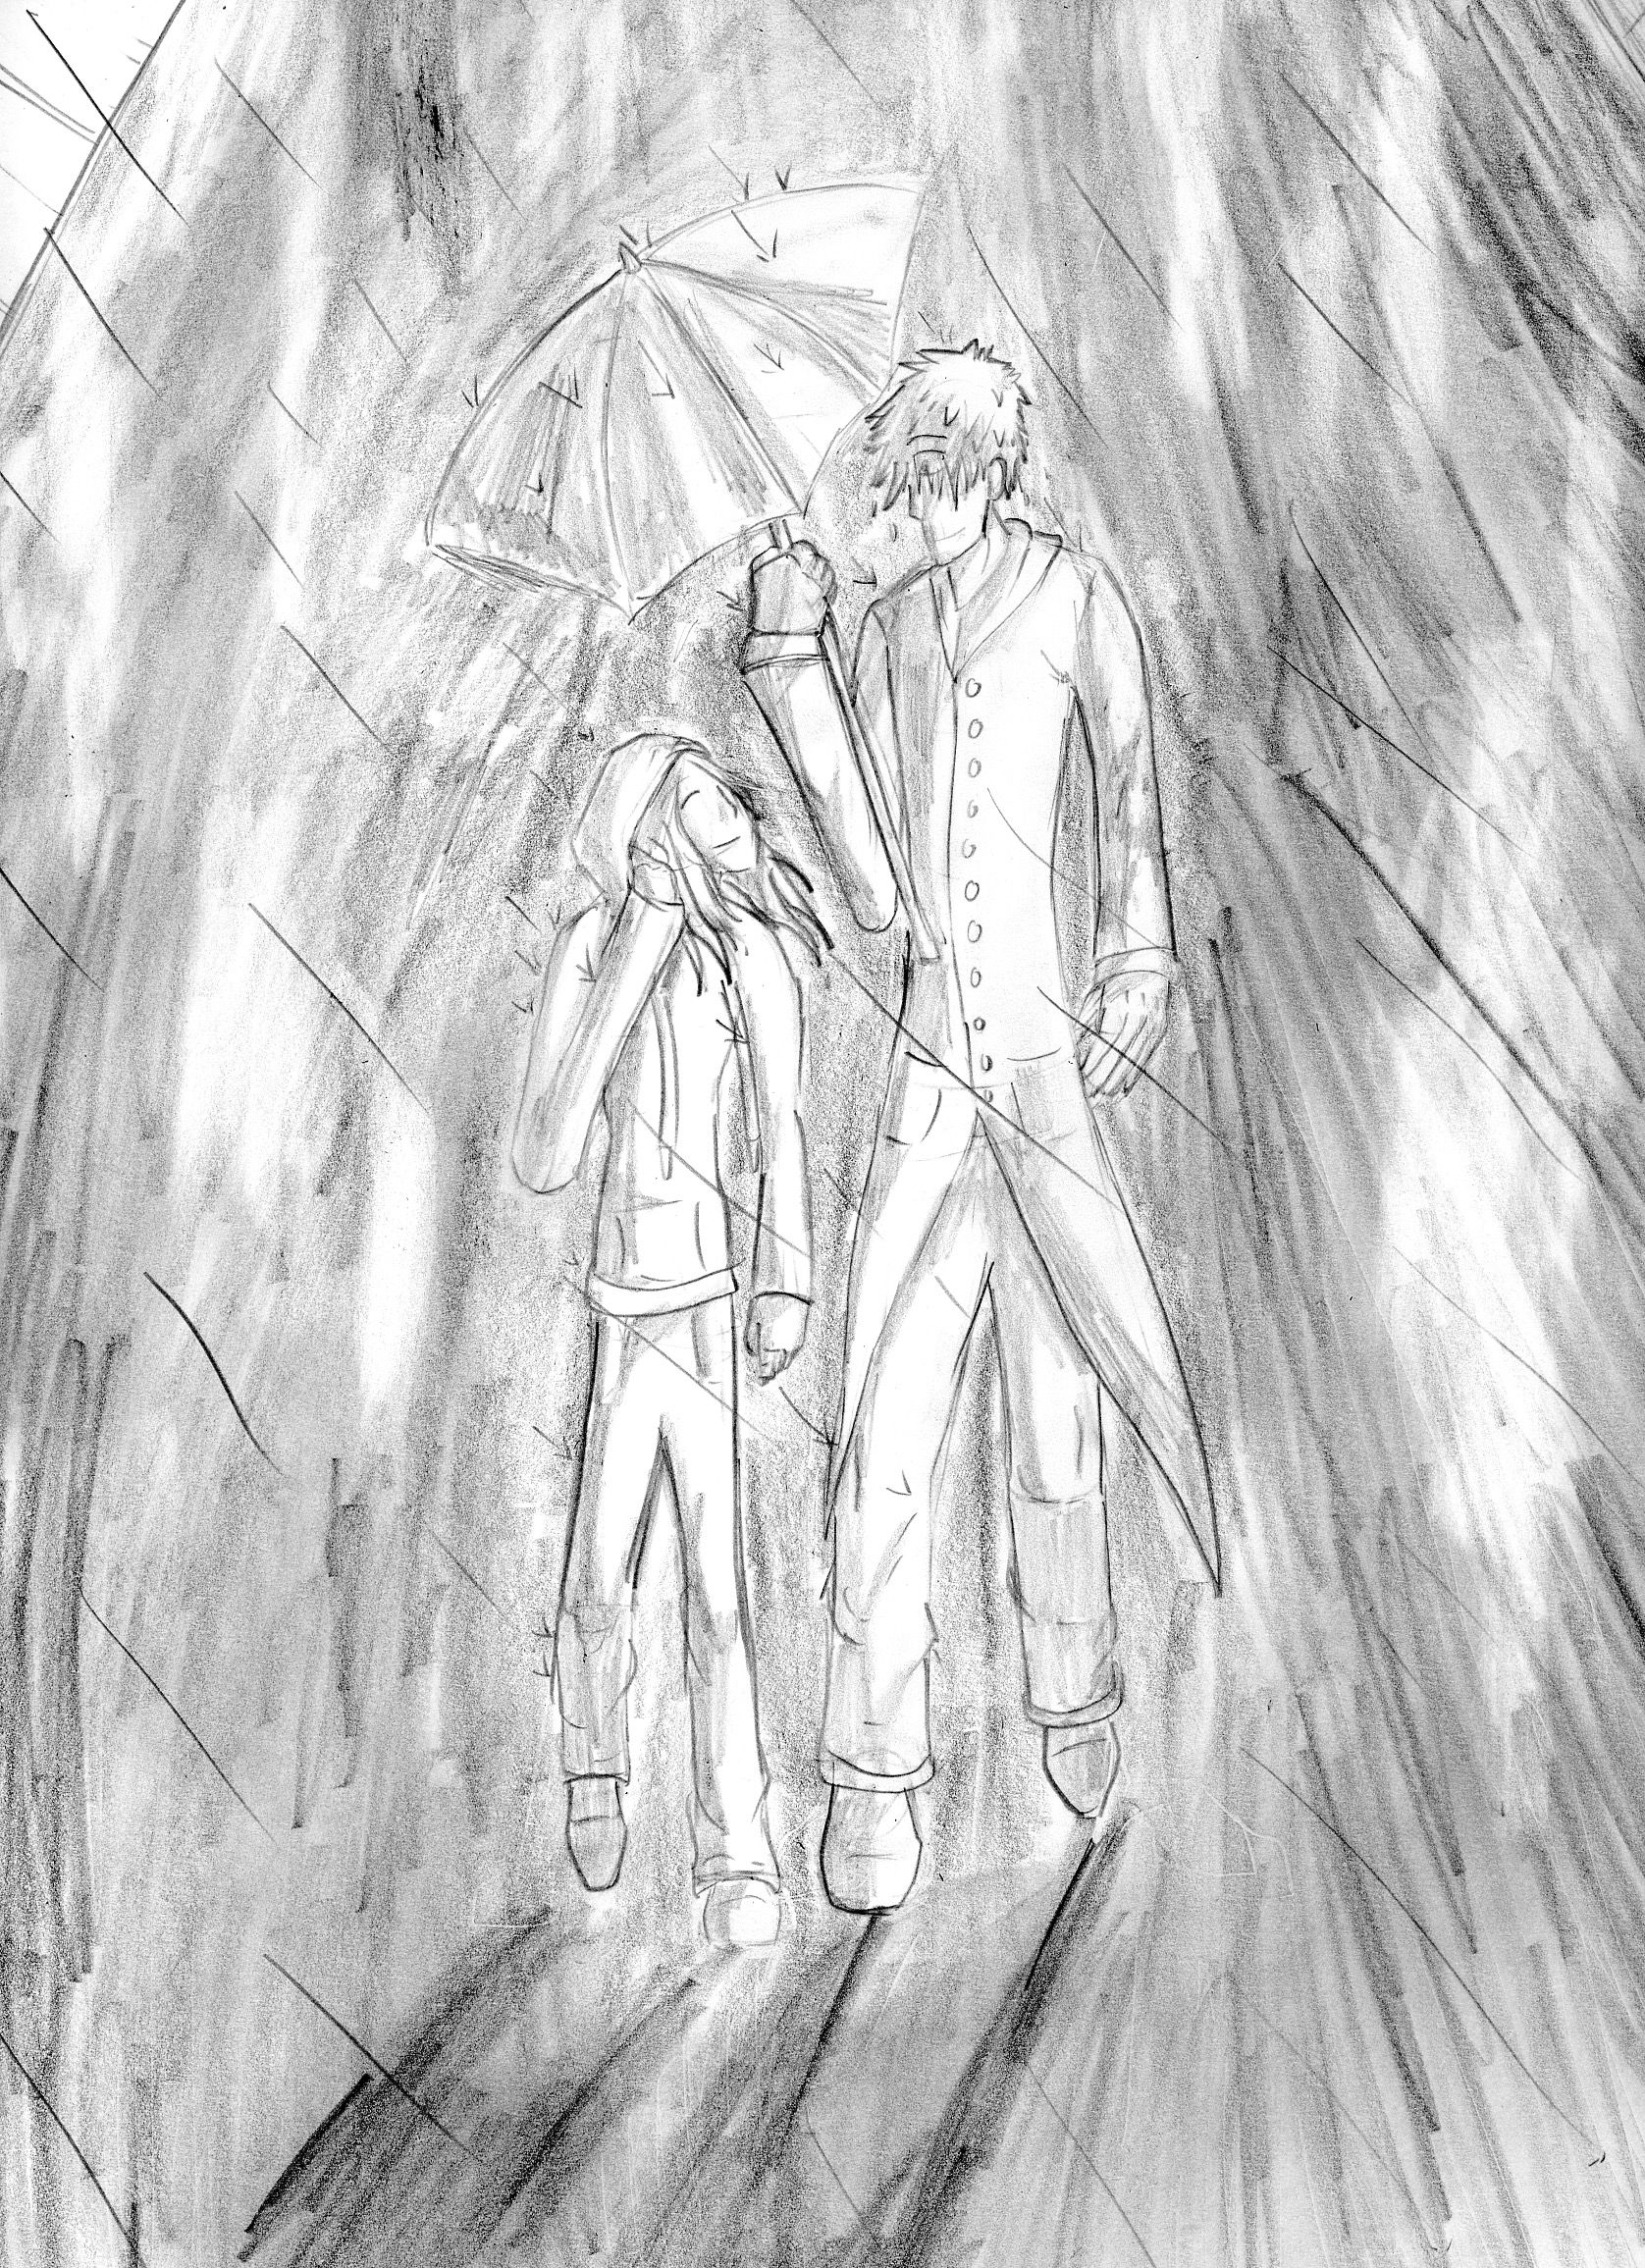 Best Friends This Drawing Portrays Specter And Destinys Older